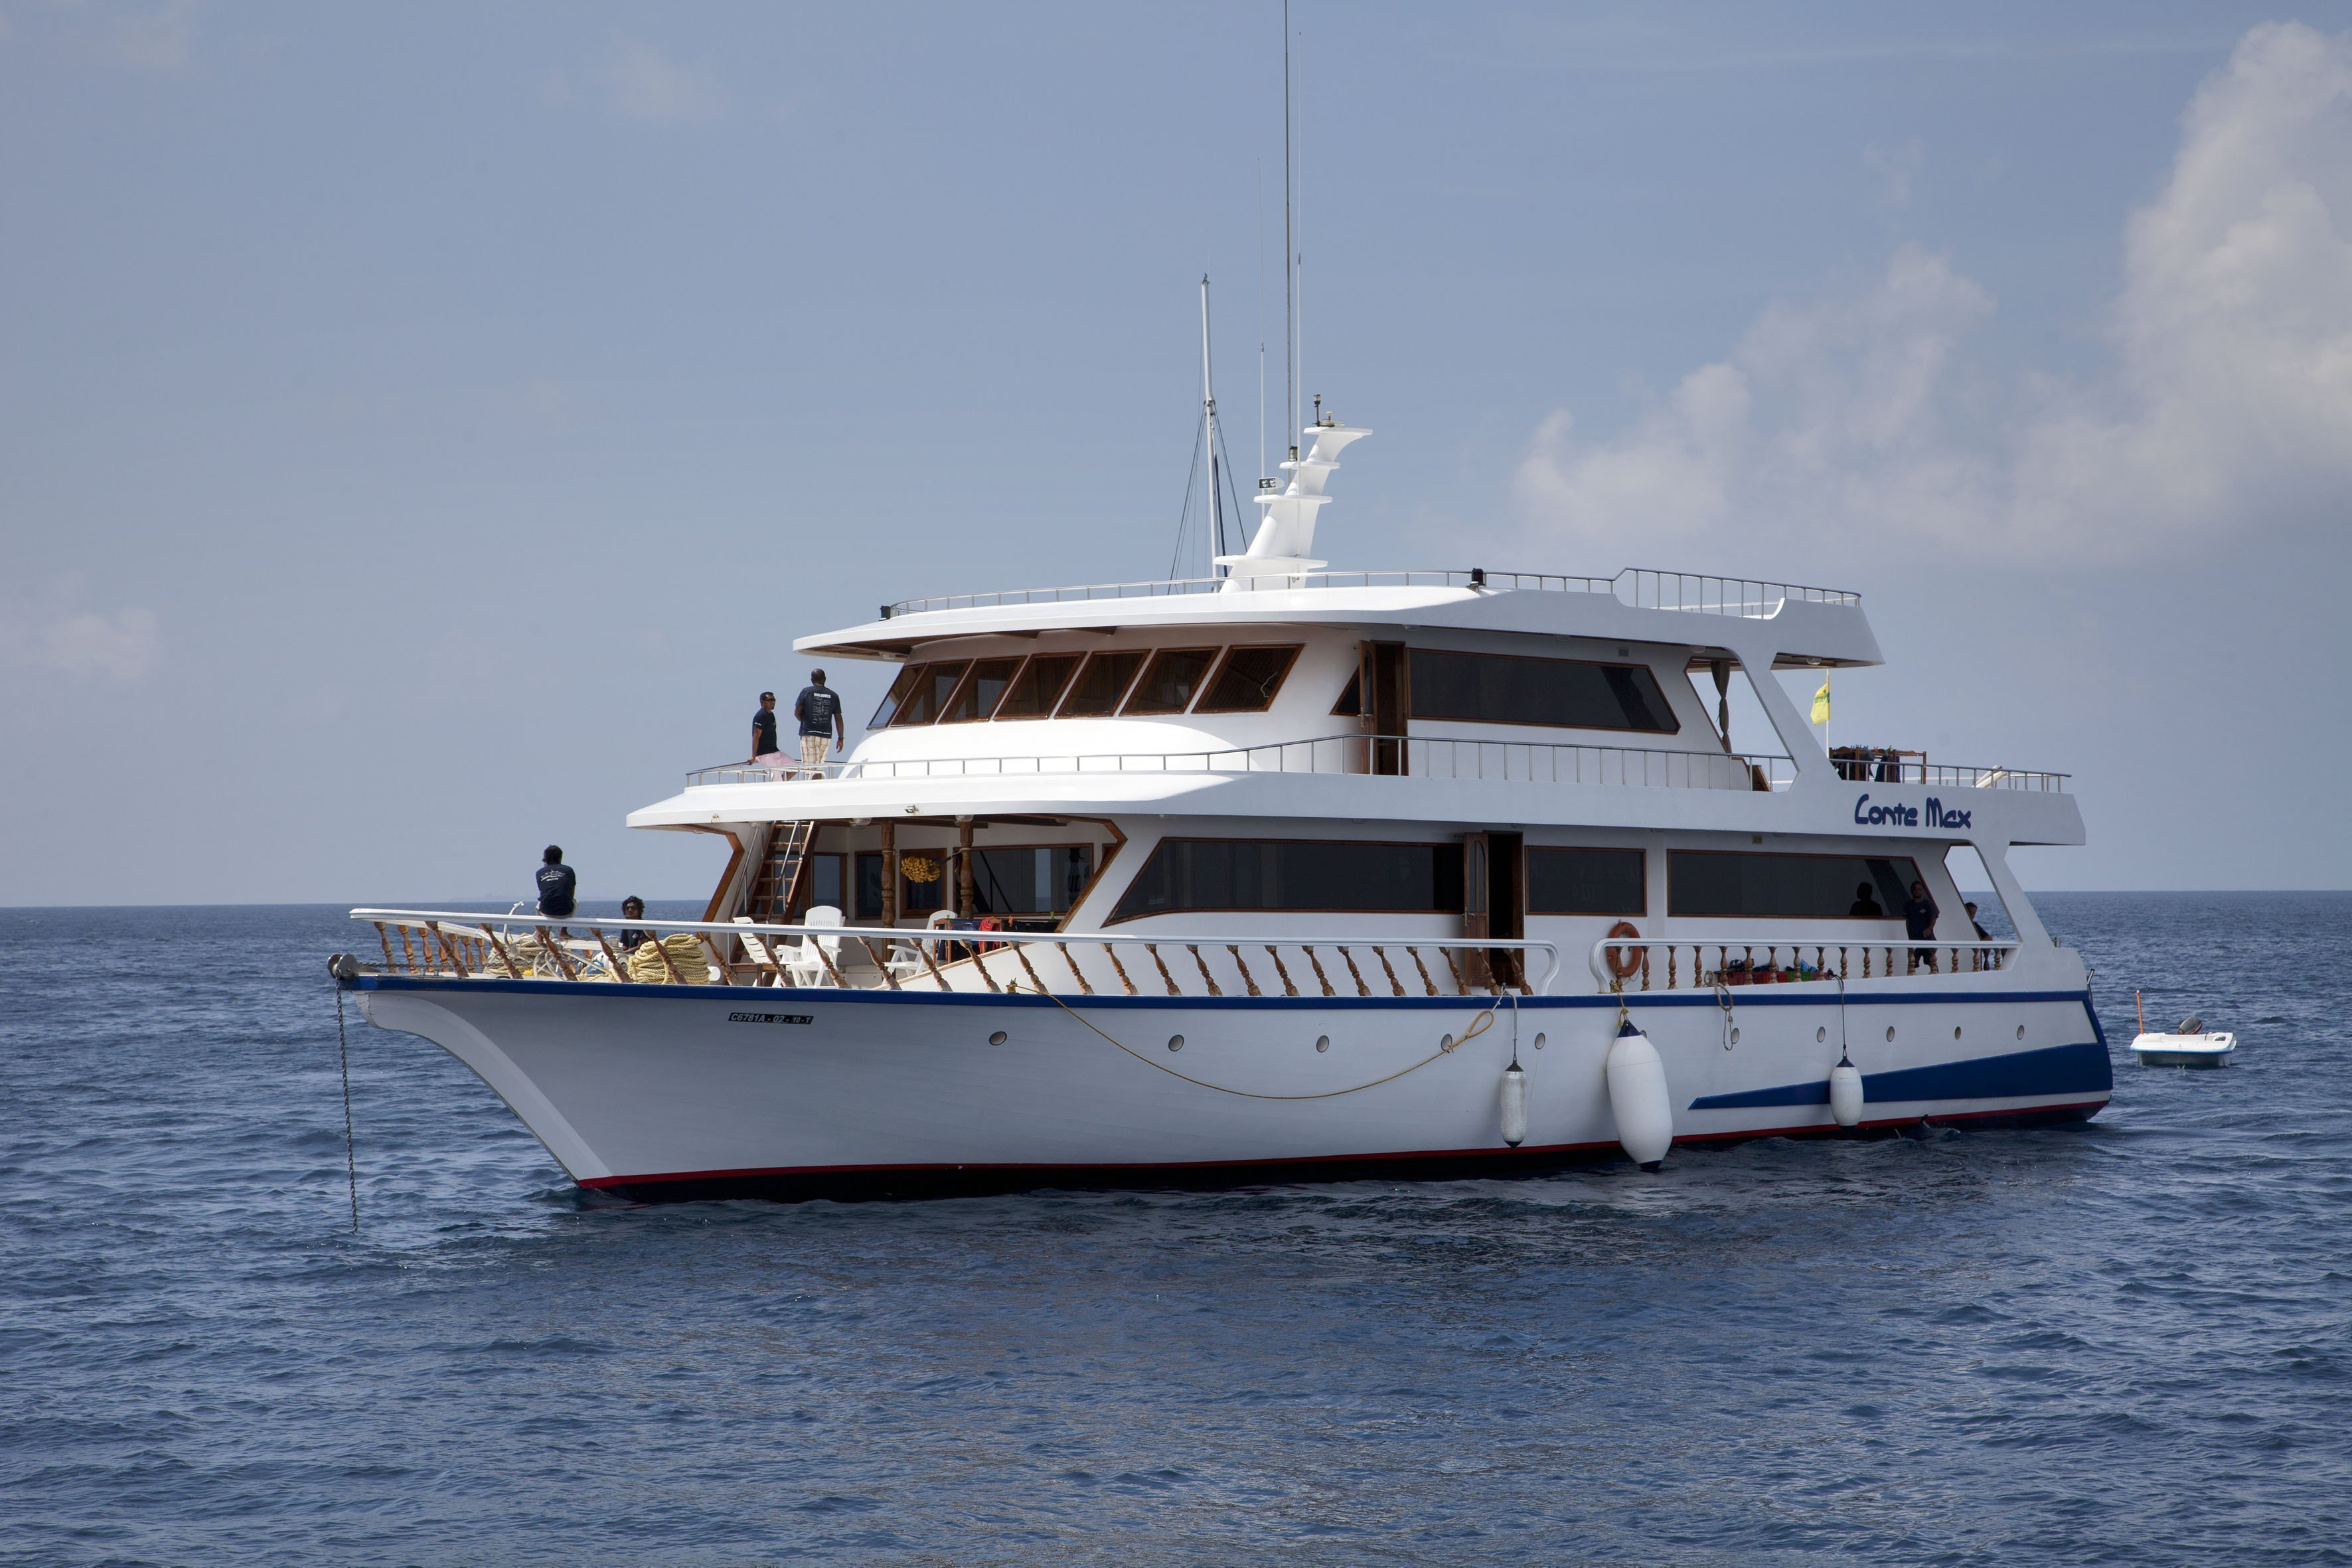 Maldives diving cruise - low - 0